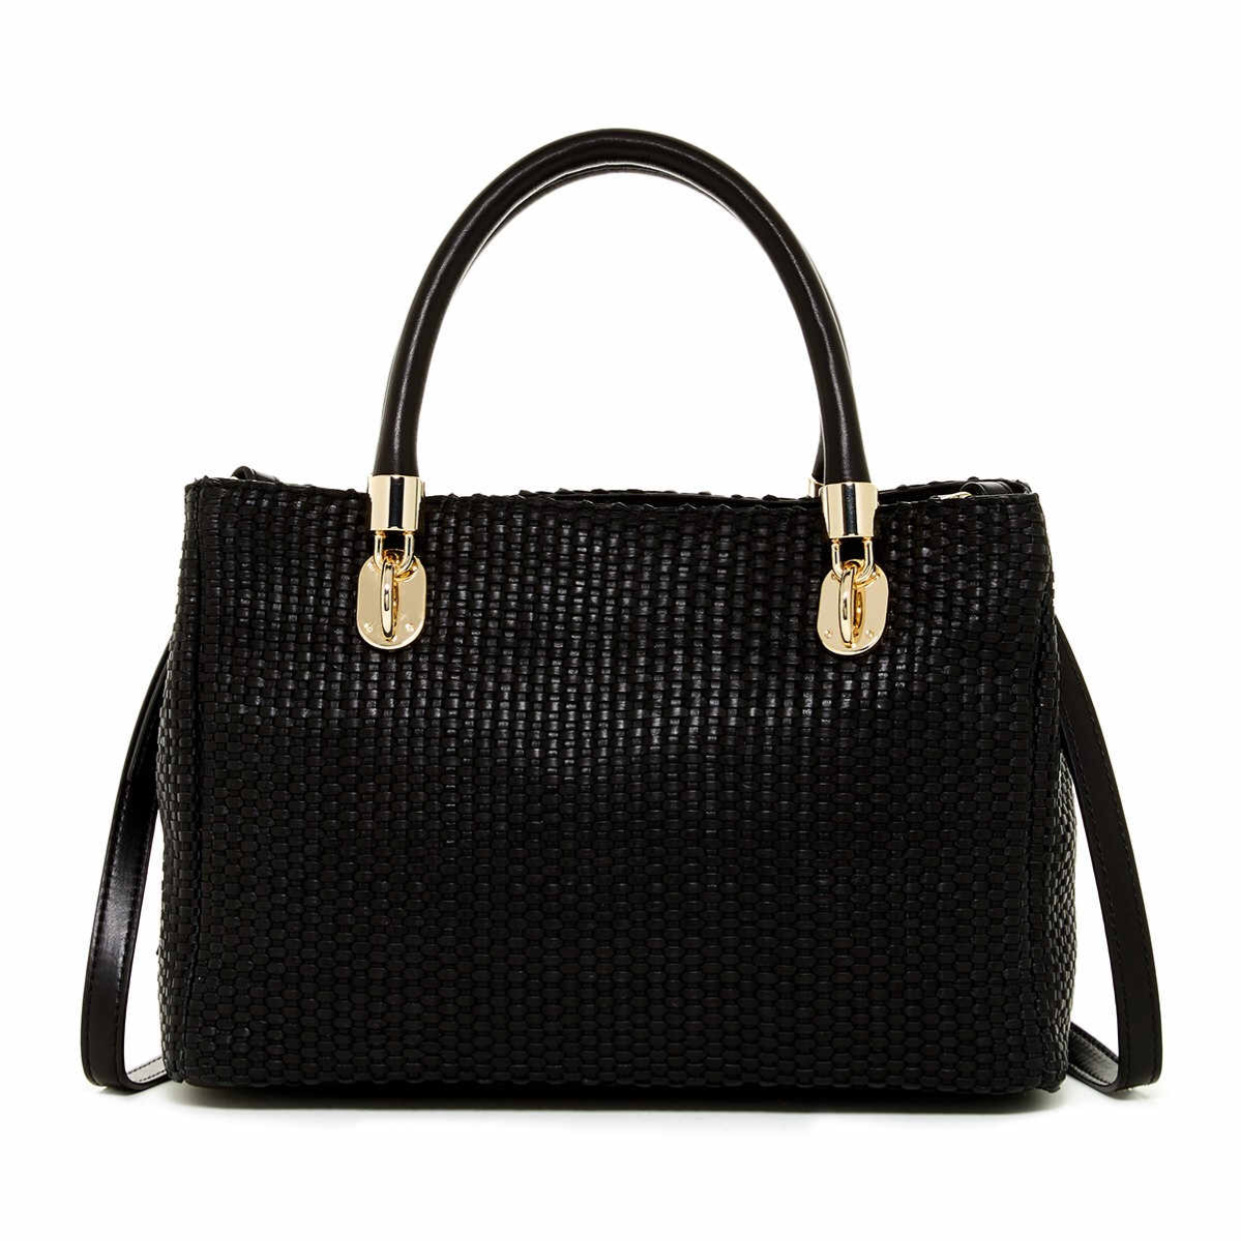 SALE price COLE HAAN Benson leather crochet bags - BUYMA